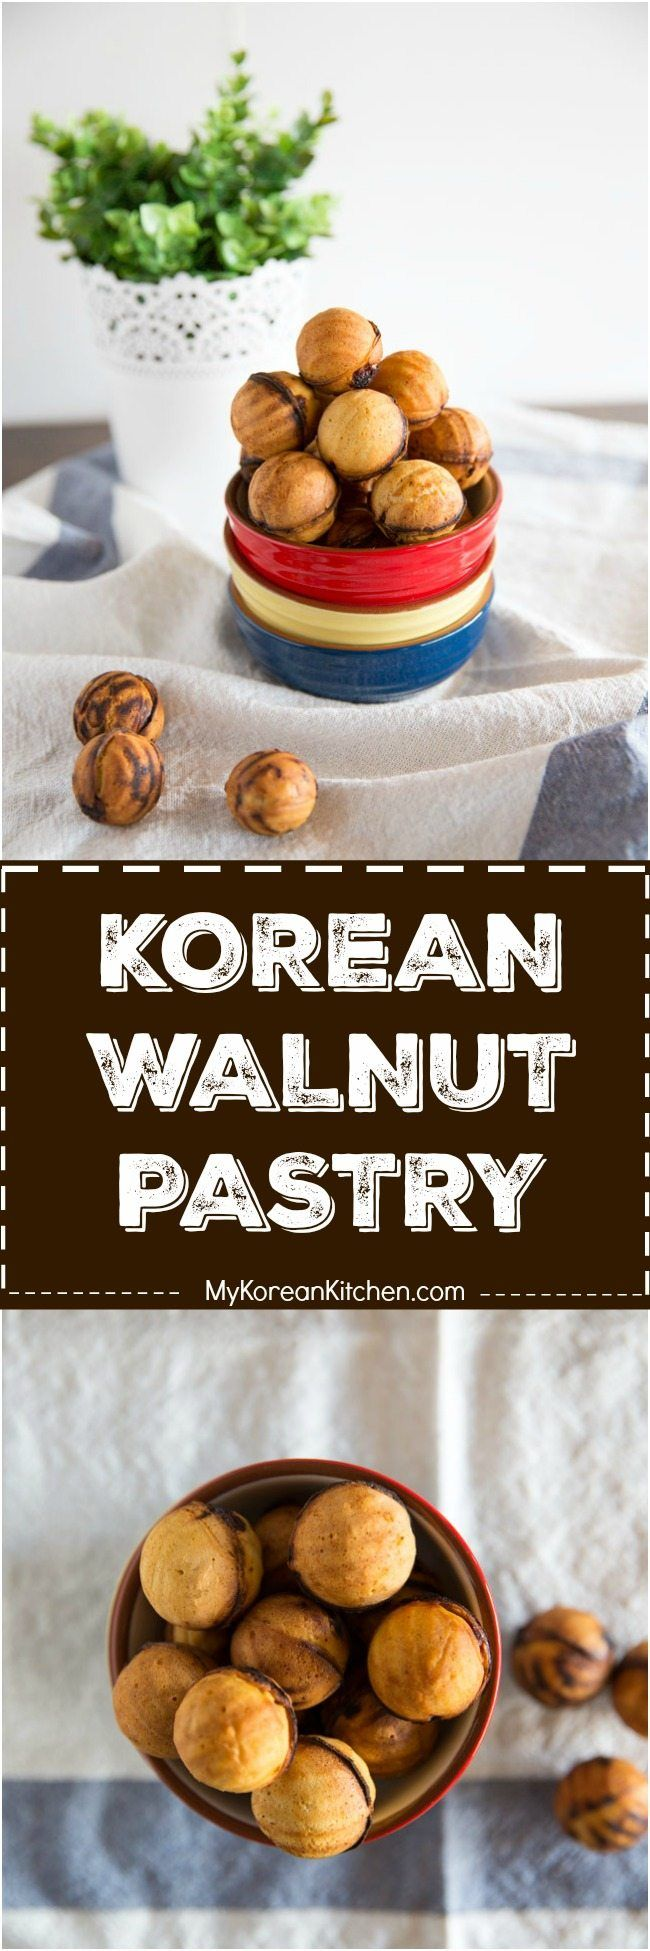 Best 25+ Korean dessert ideas on Pinterest | Bubble tea ...